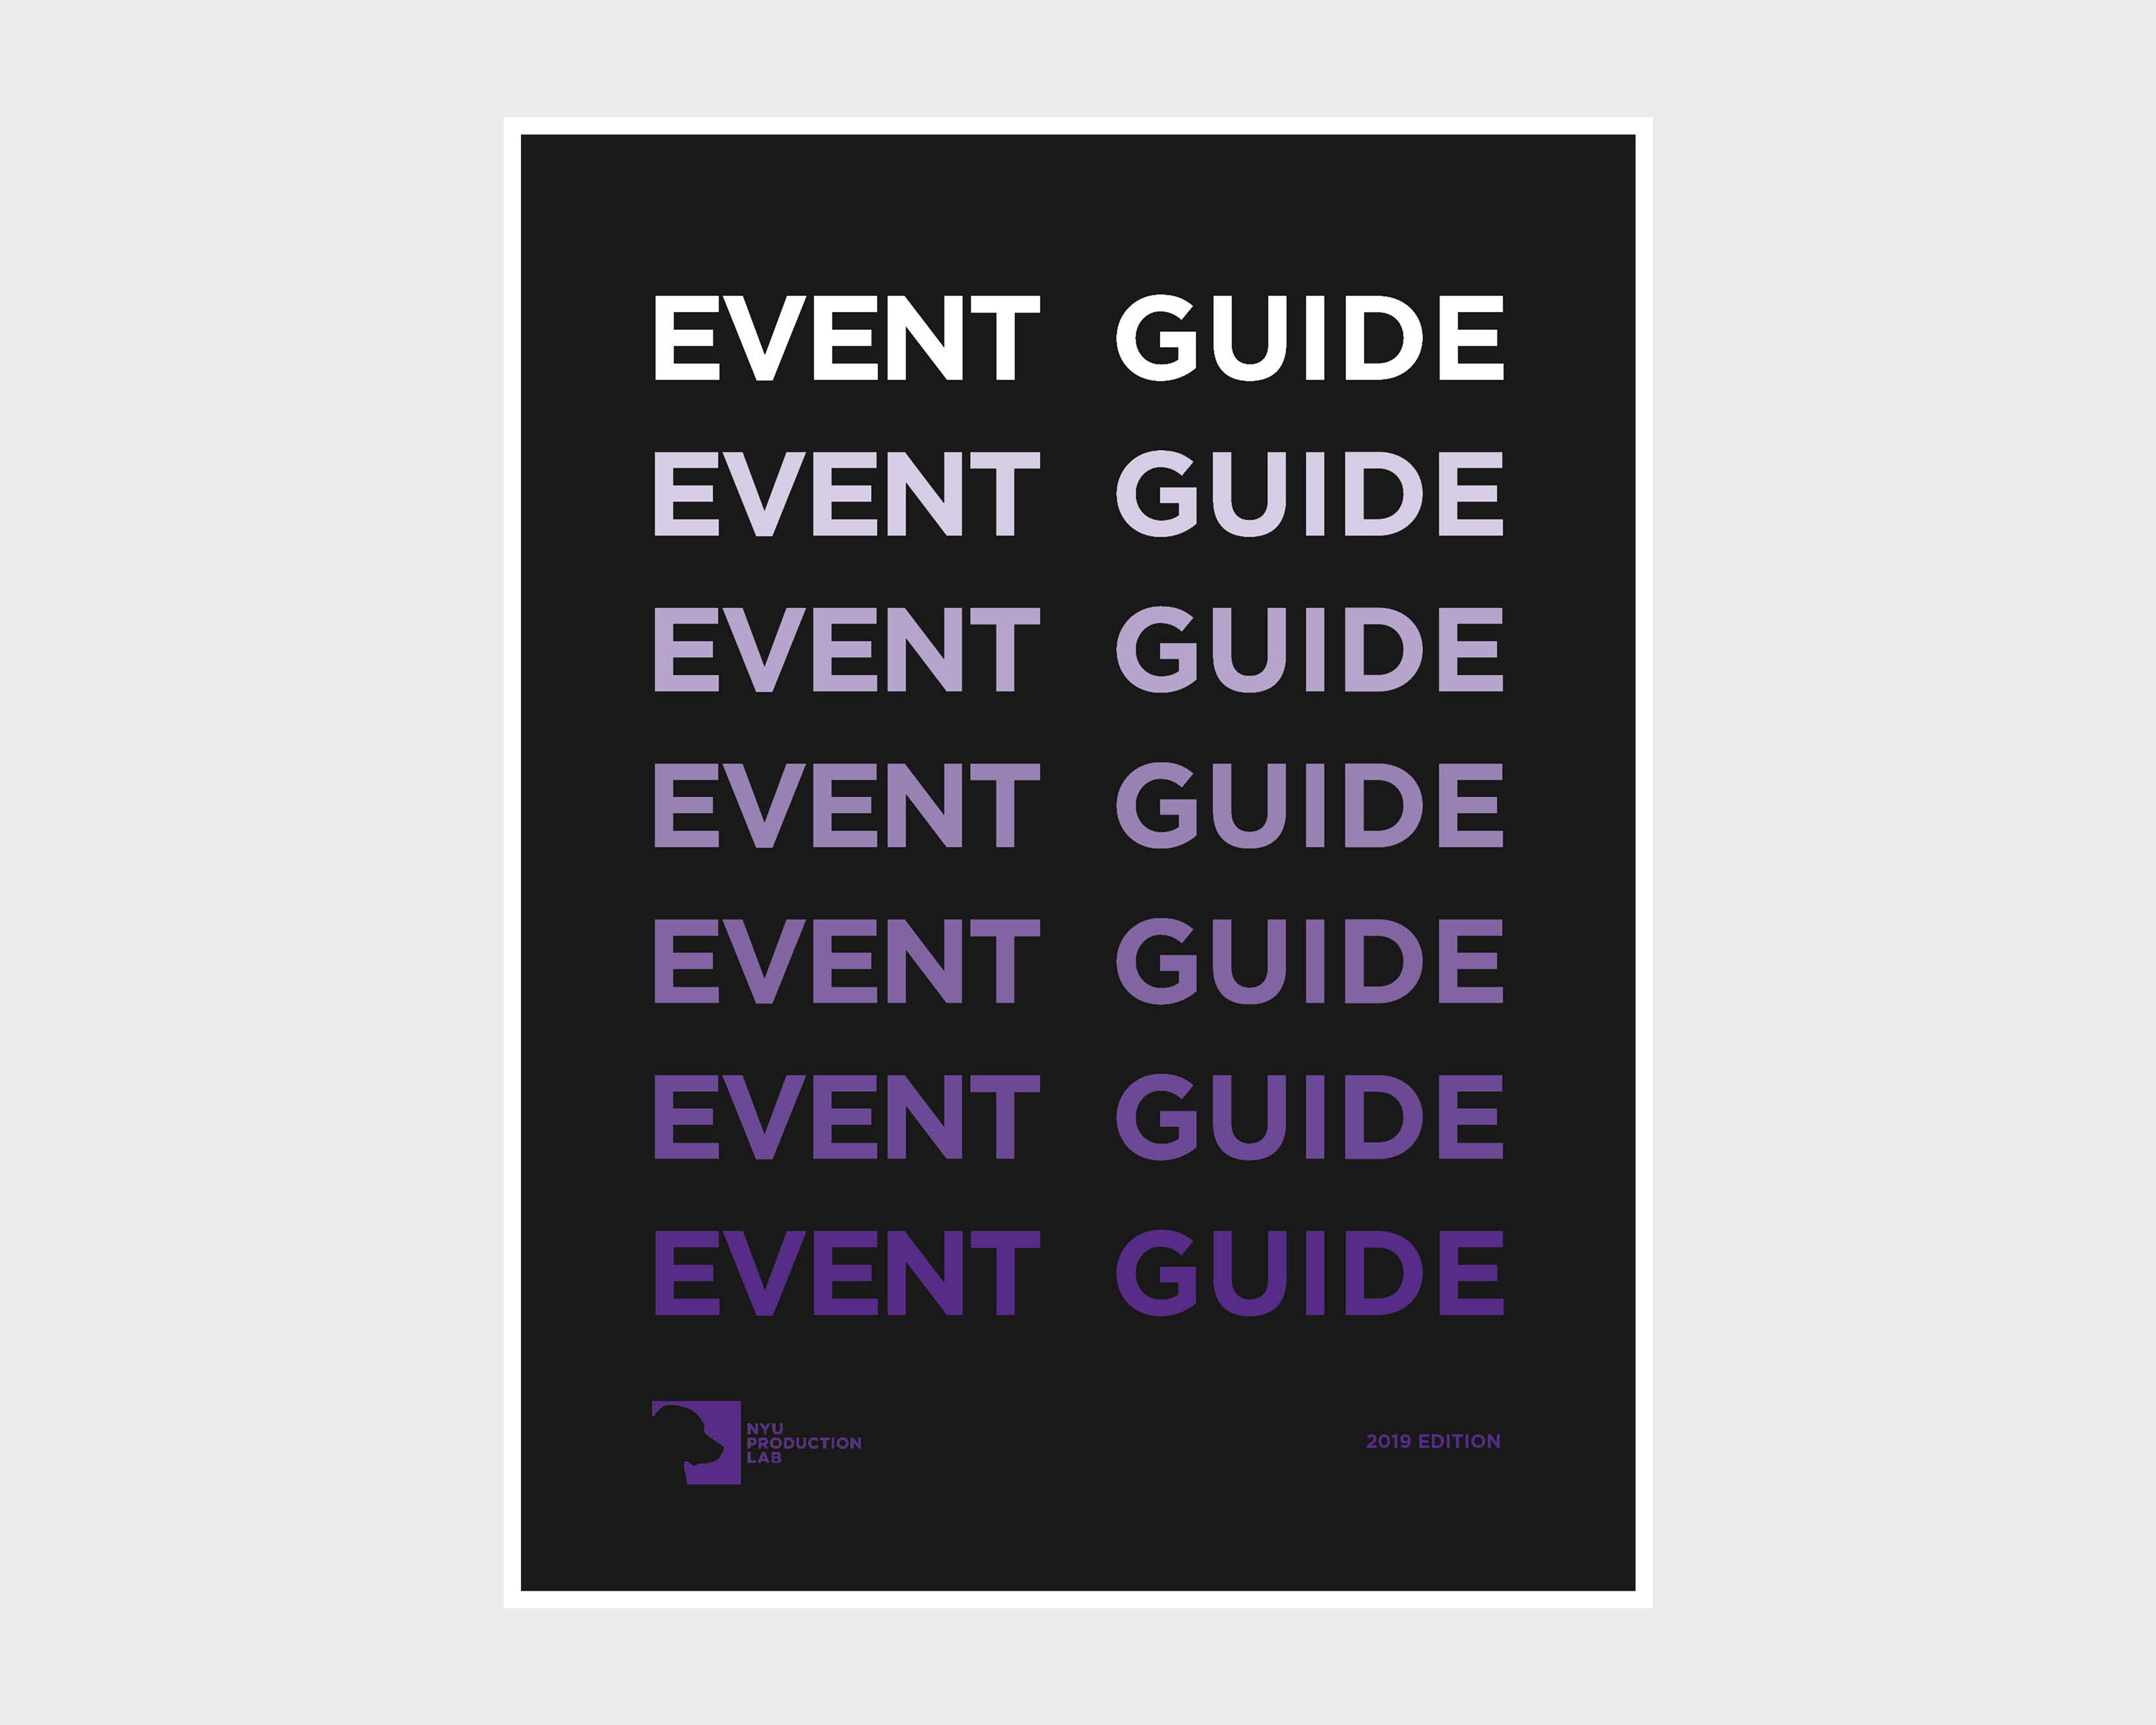 the event guide cover